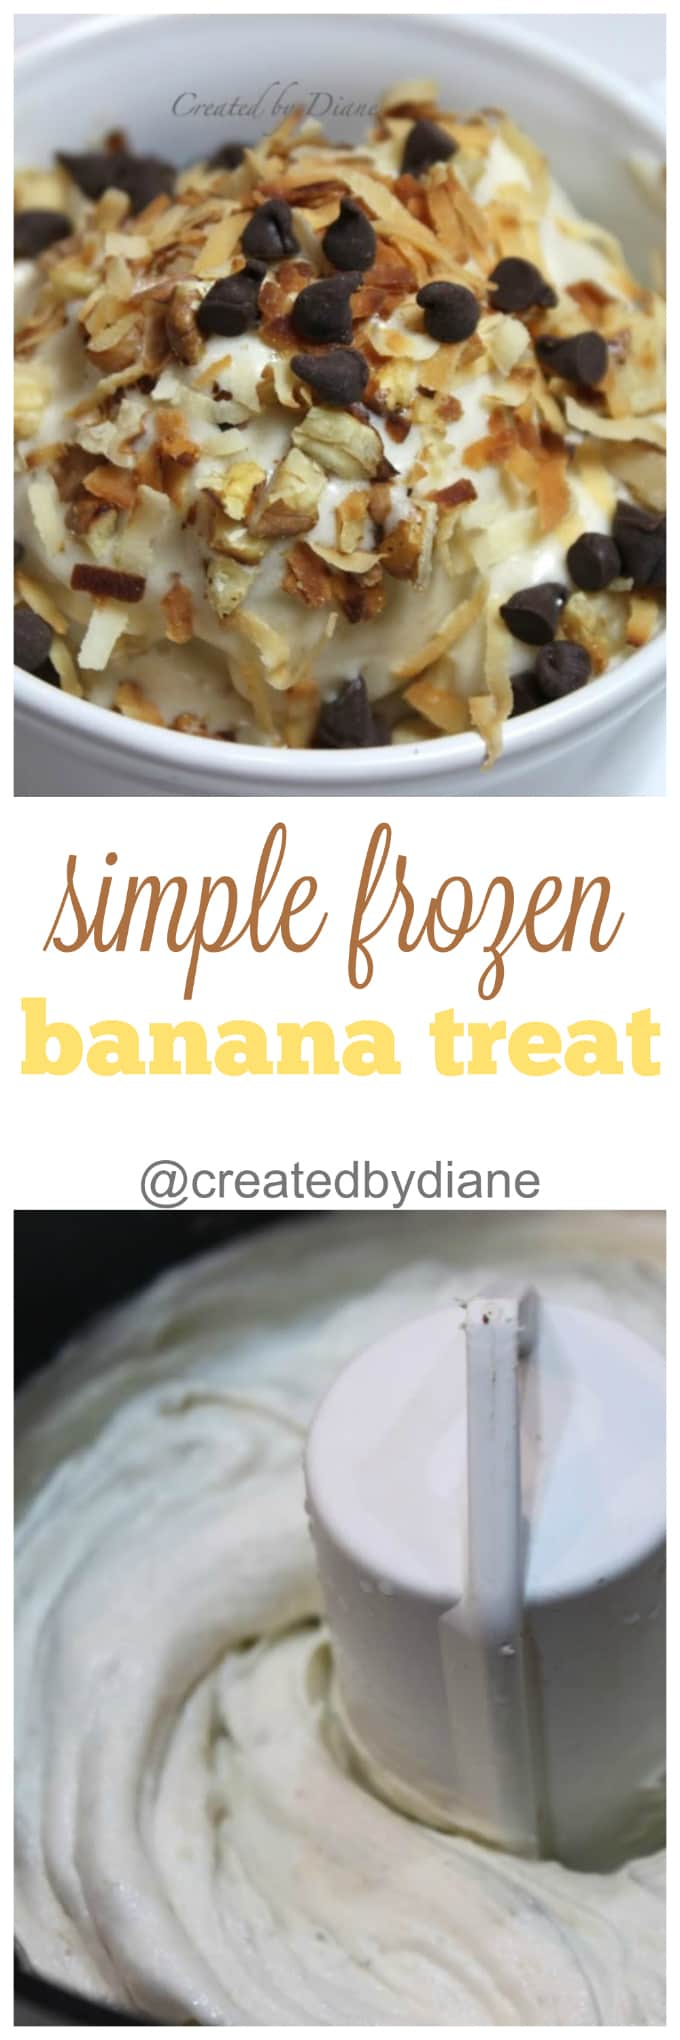 simple frozen banana treat from @createdbydiane